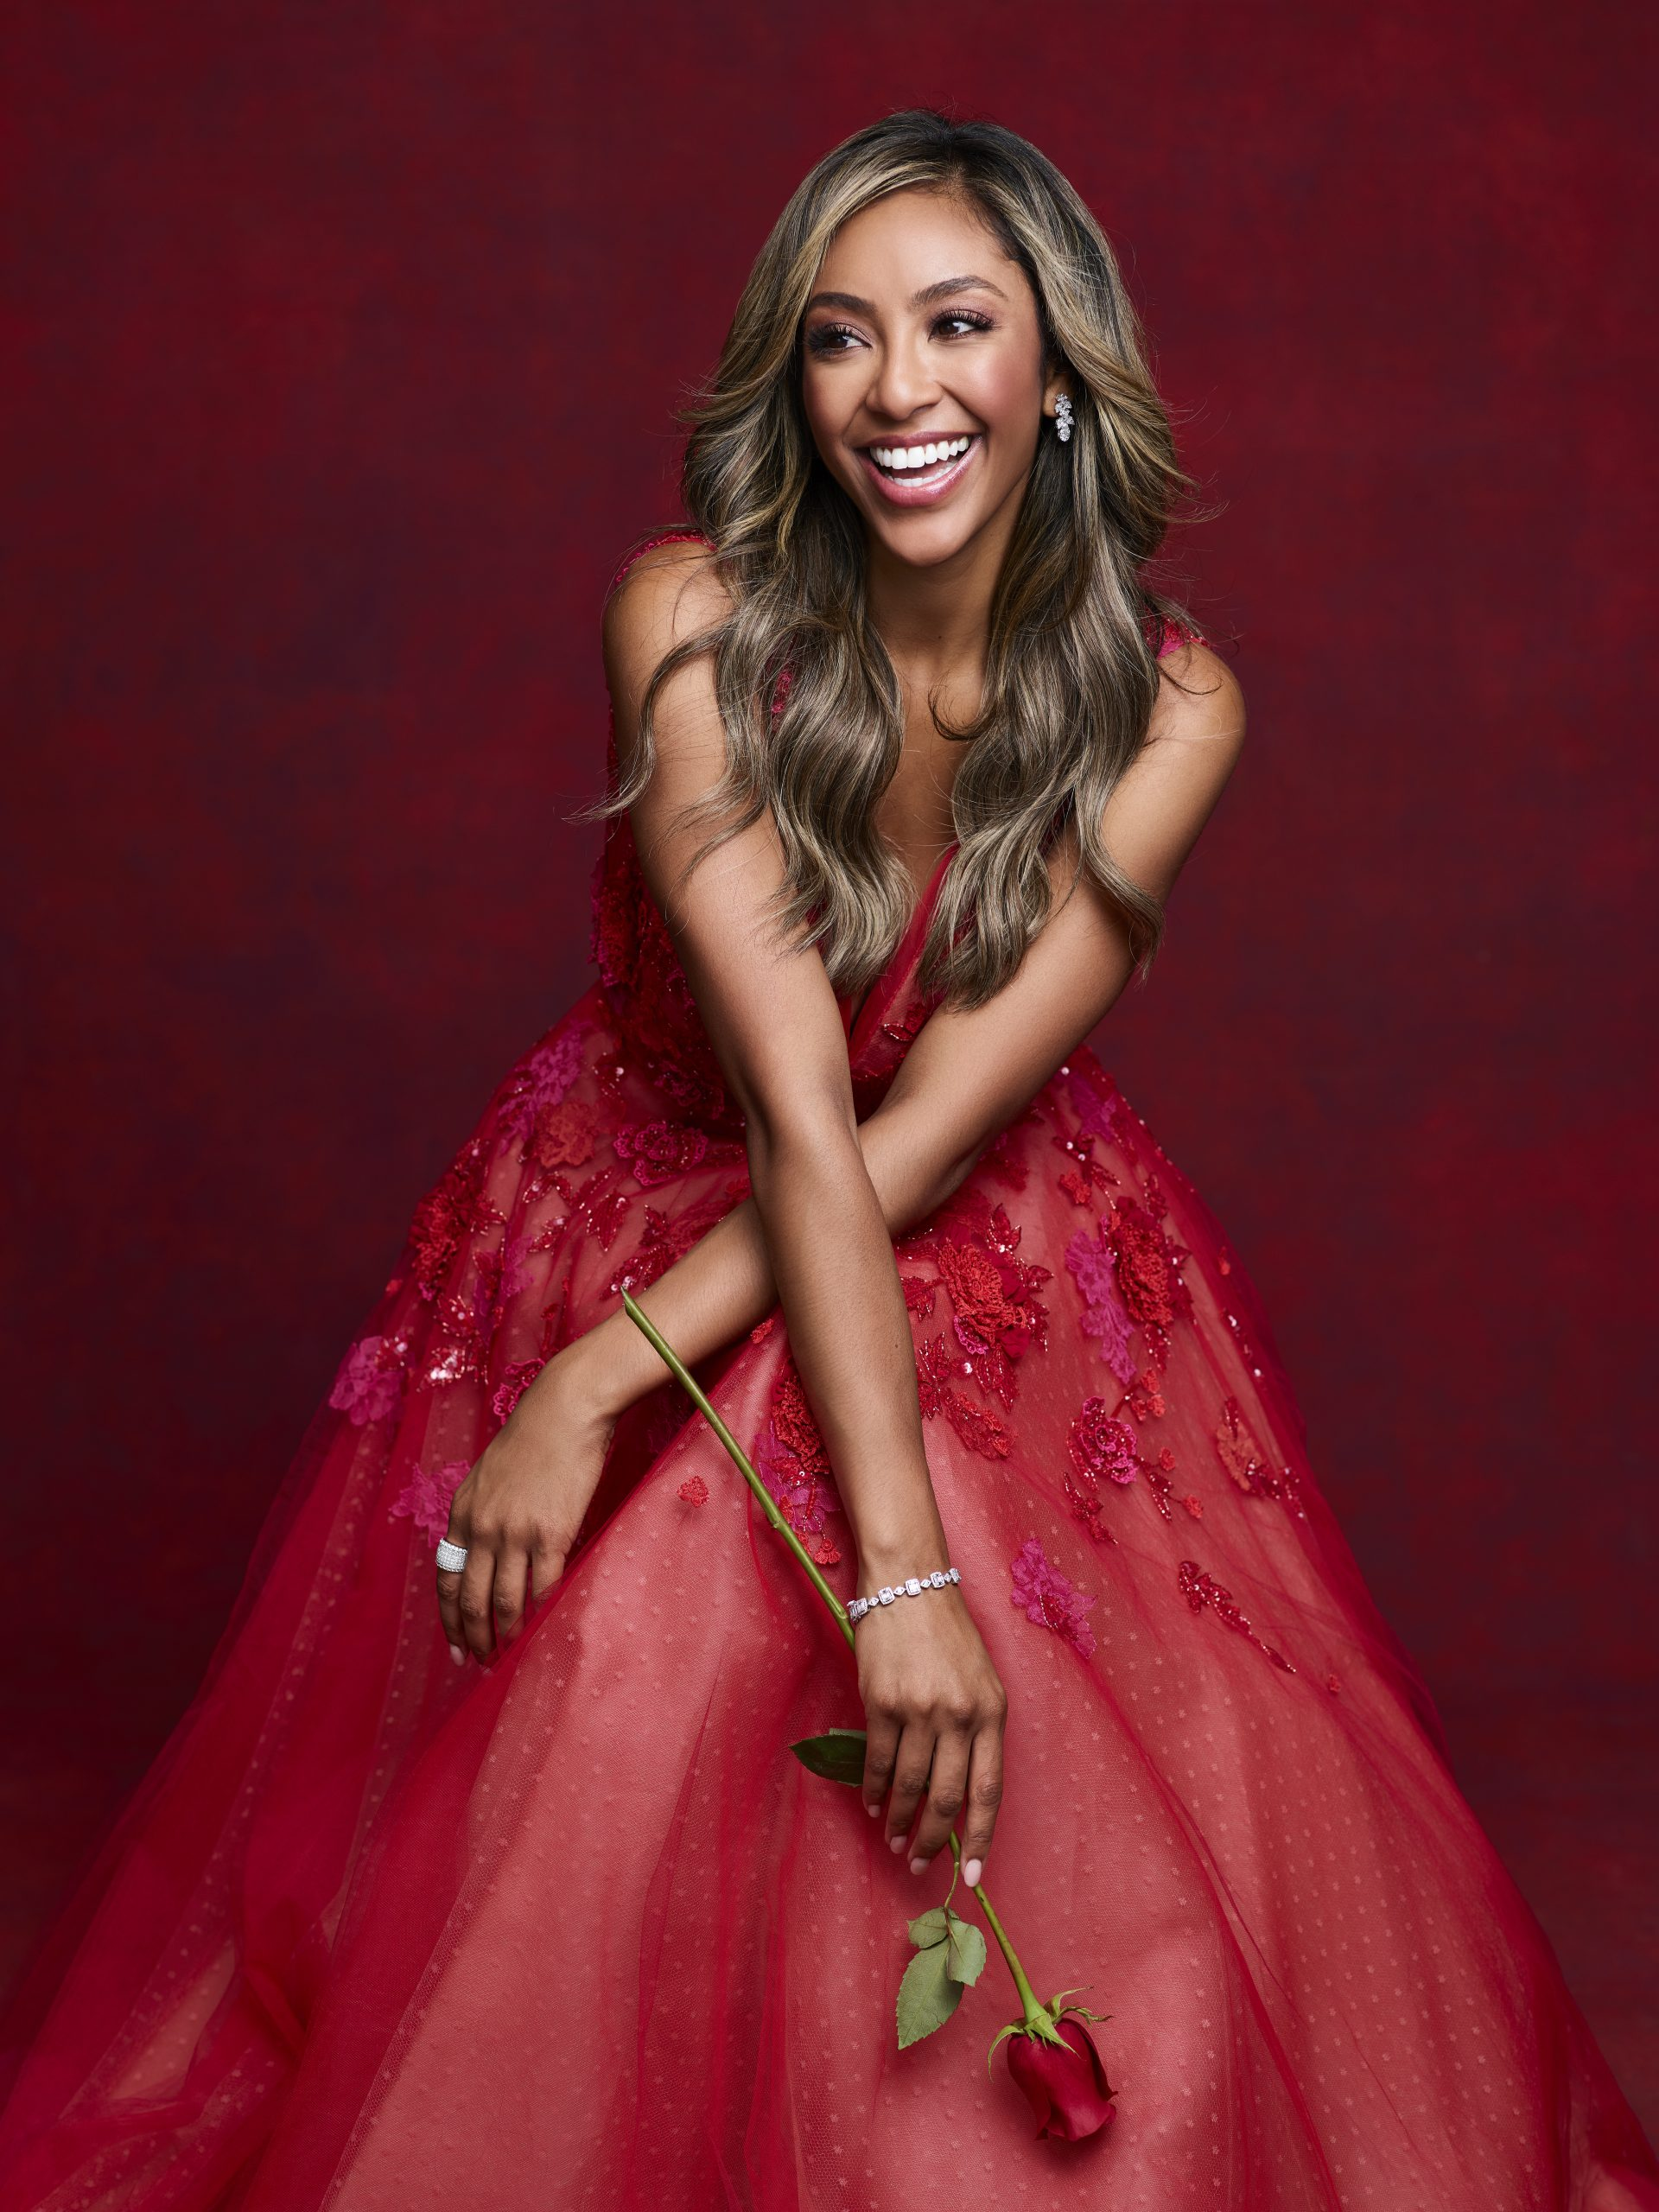 Oh My, There's A New Bachelorette Tayshia Adams